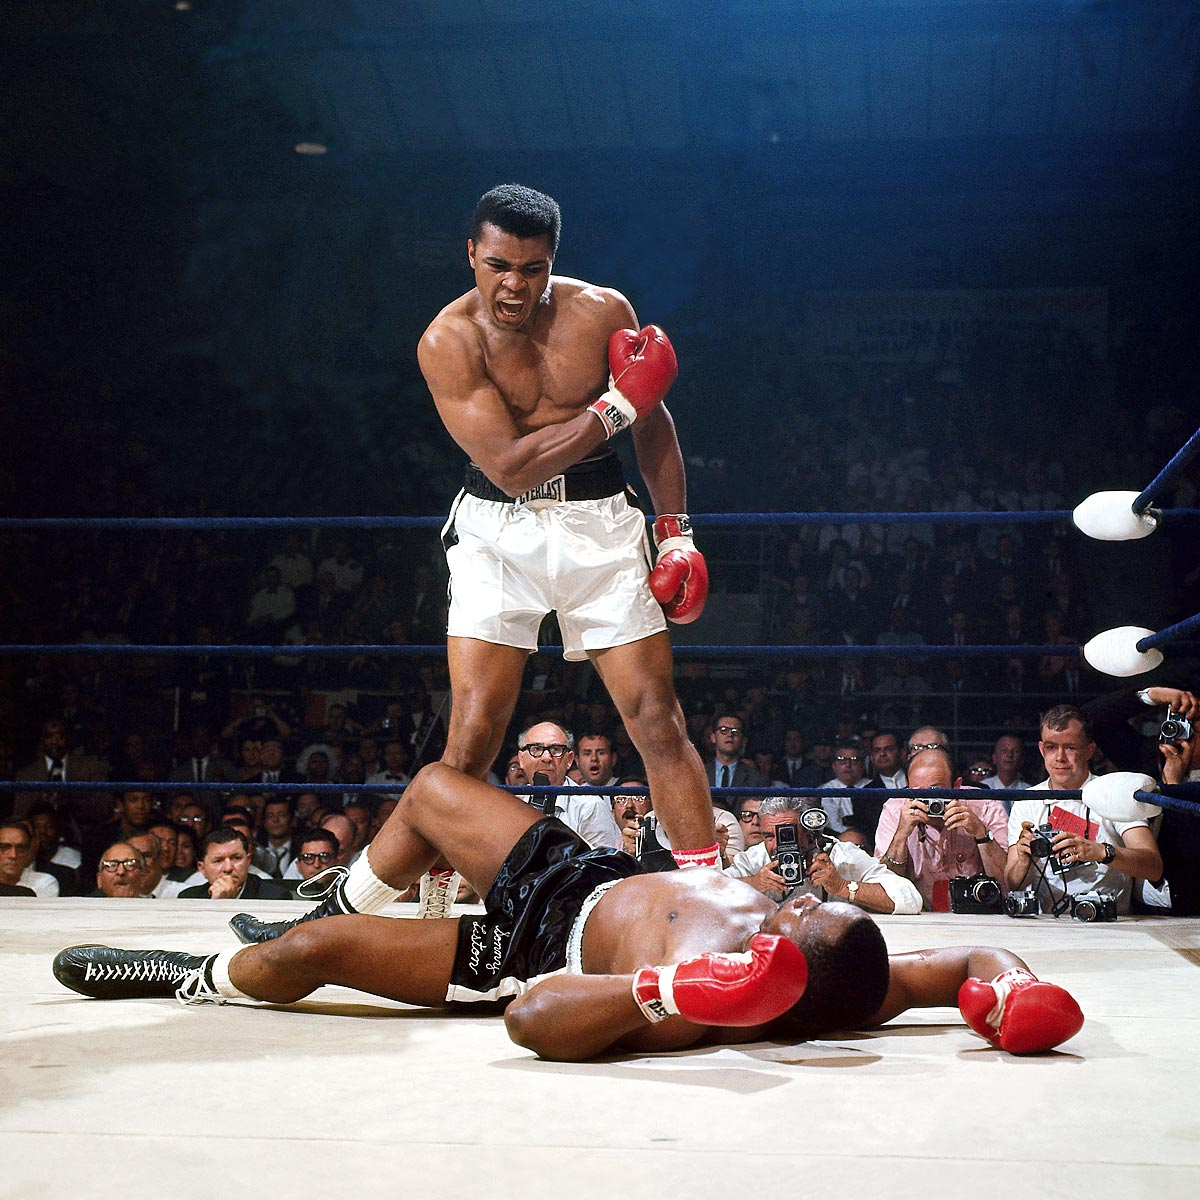 May 25, 1965 | In their heavyweight title rematch Ali defeated Liston by knockout in the first round. Ali would hold the heavyweight title until 1967, when he was stripped of it for refusing to be drafted into the Army.